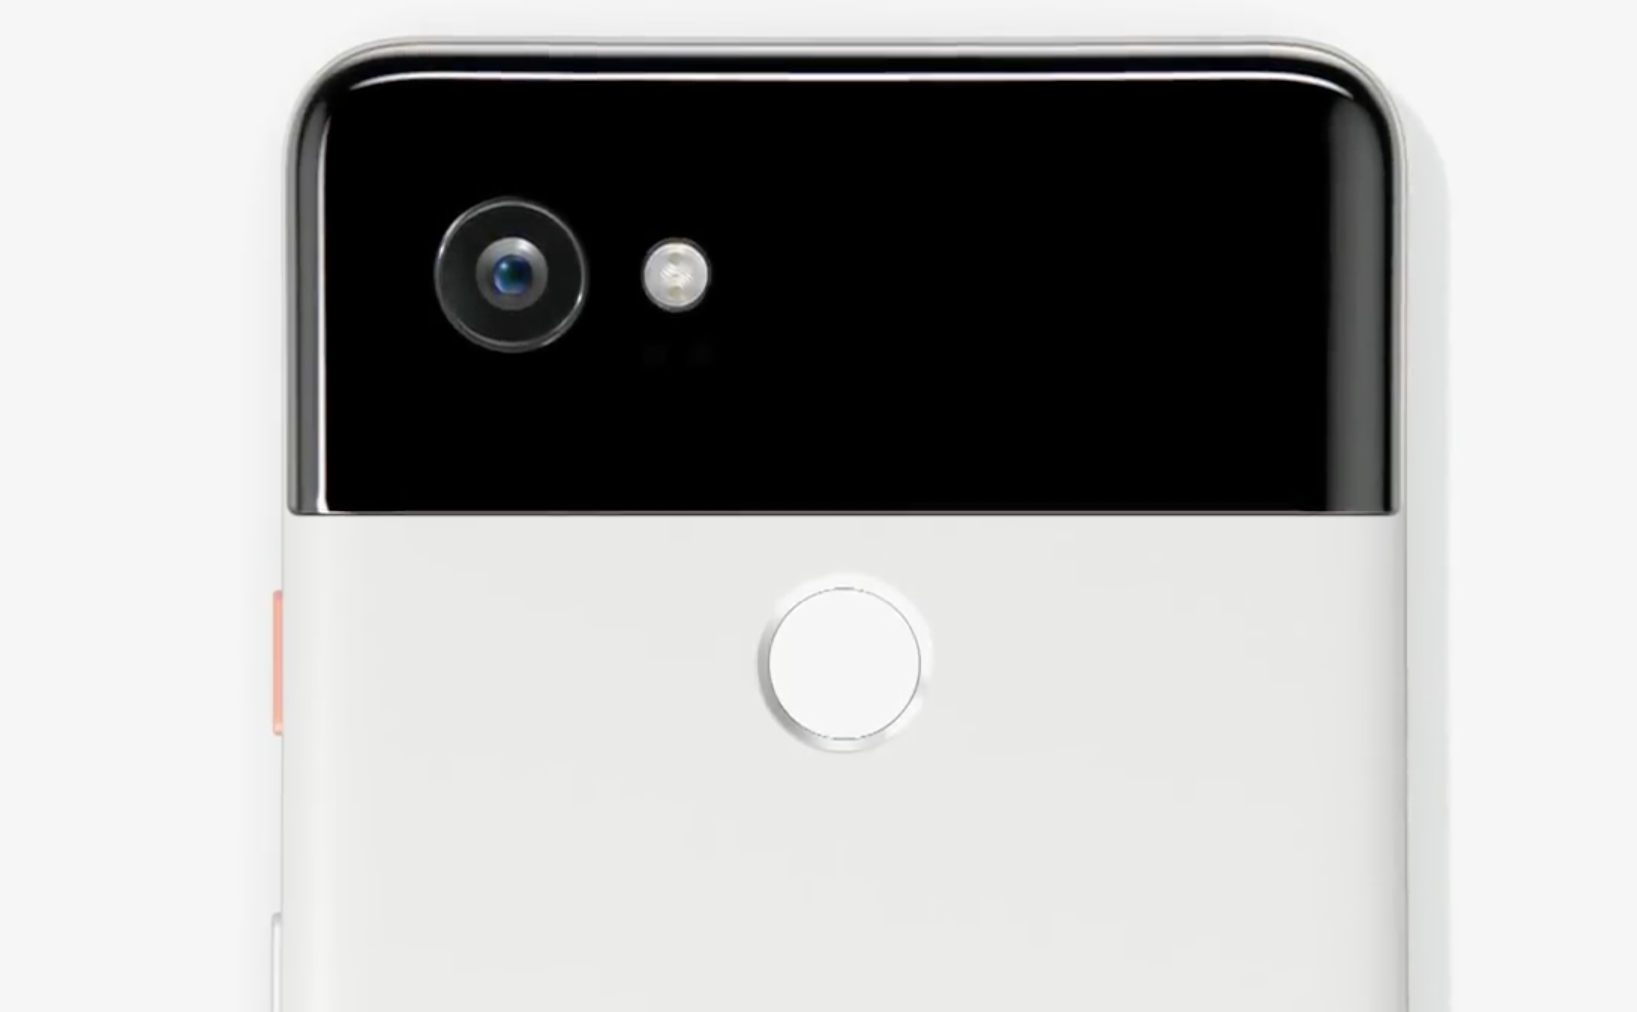 iPhone Killer? How Google Pixel 2 and Pixel 2 XL Compare ...